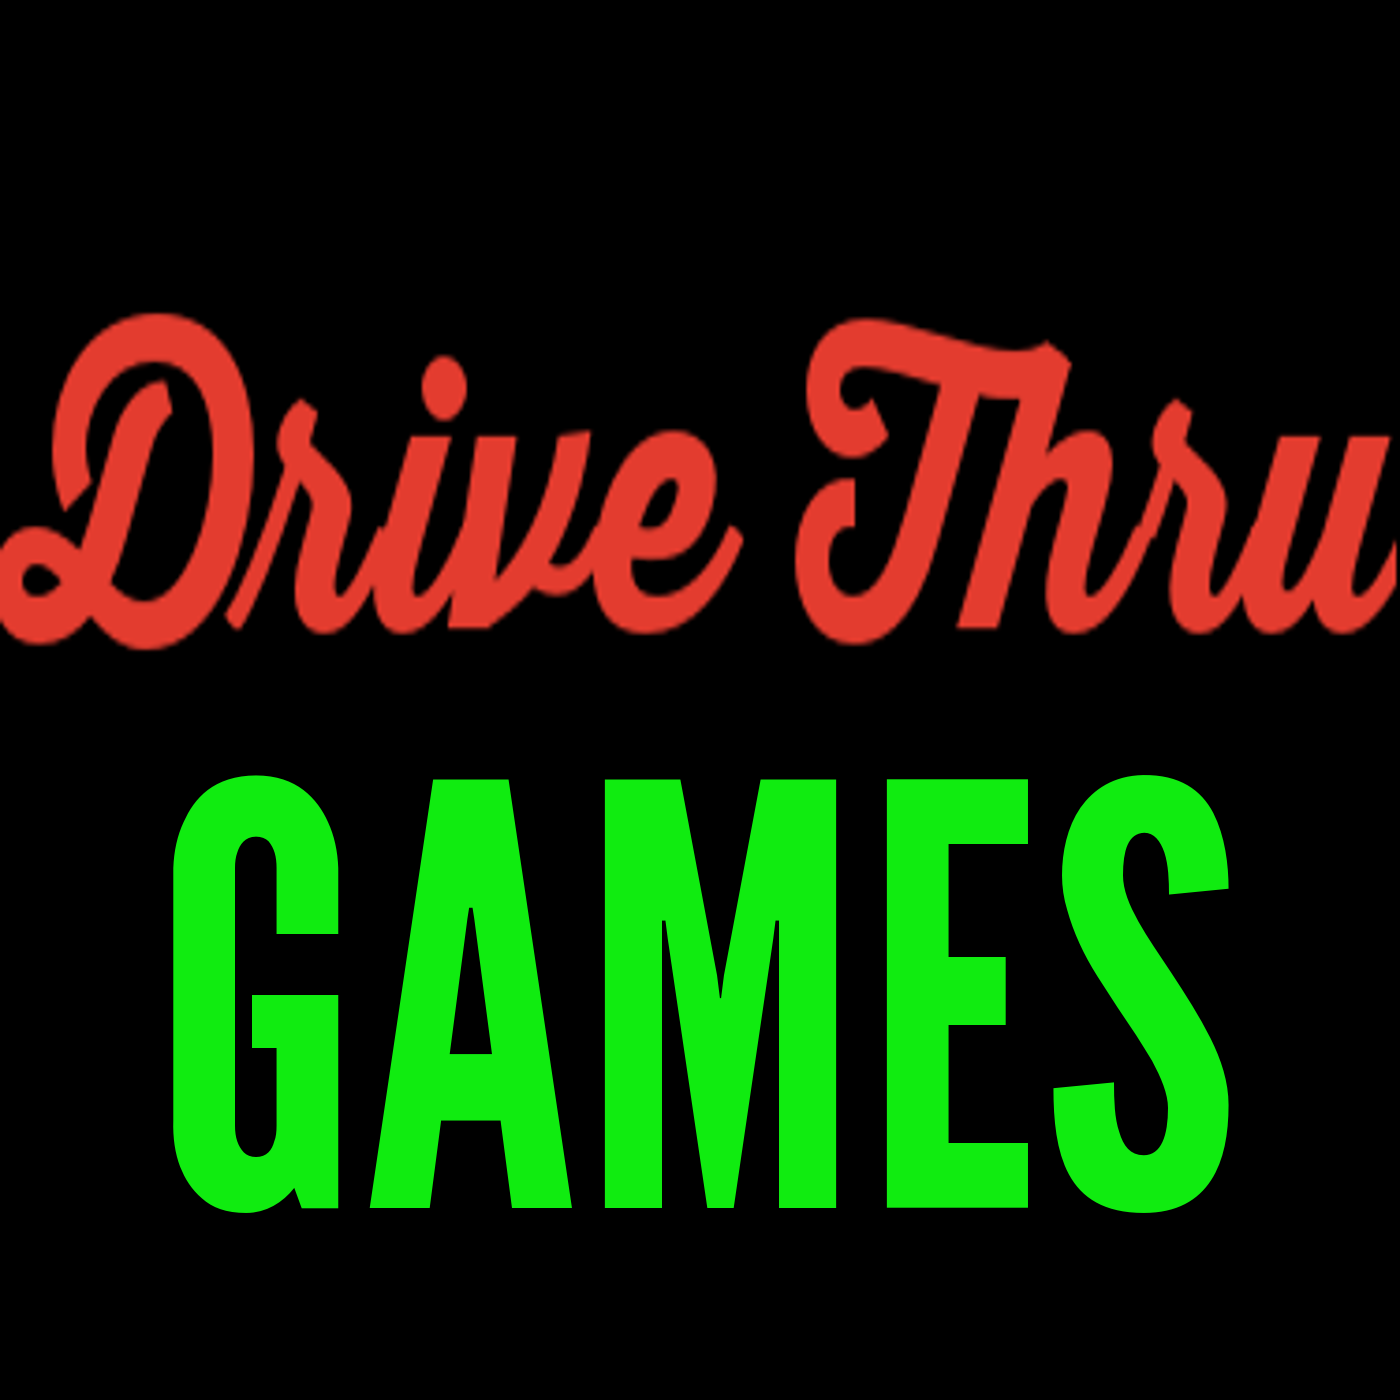 Top 50 Games of All Time (2019) - Joel Eddy Drive Thru Games